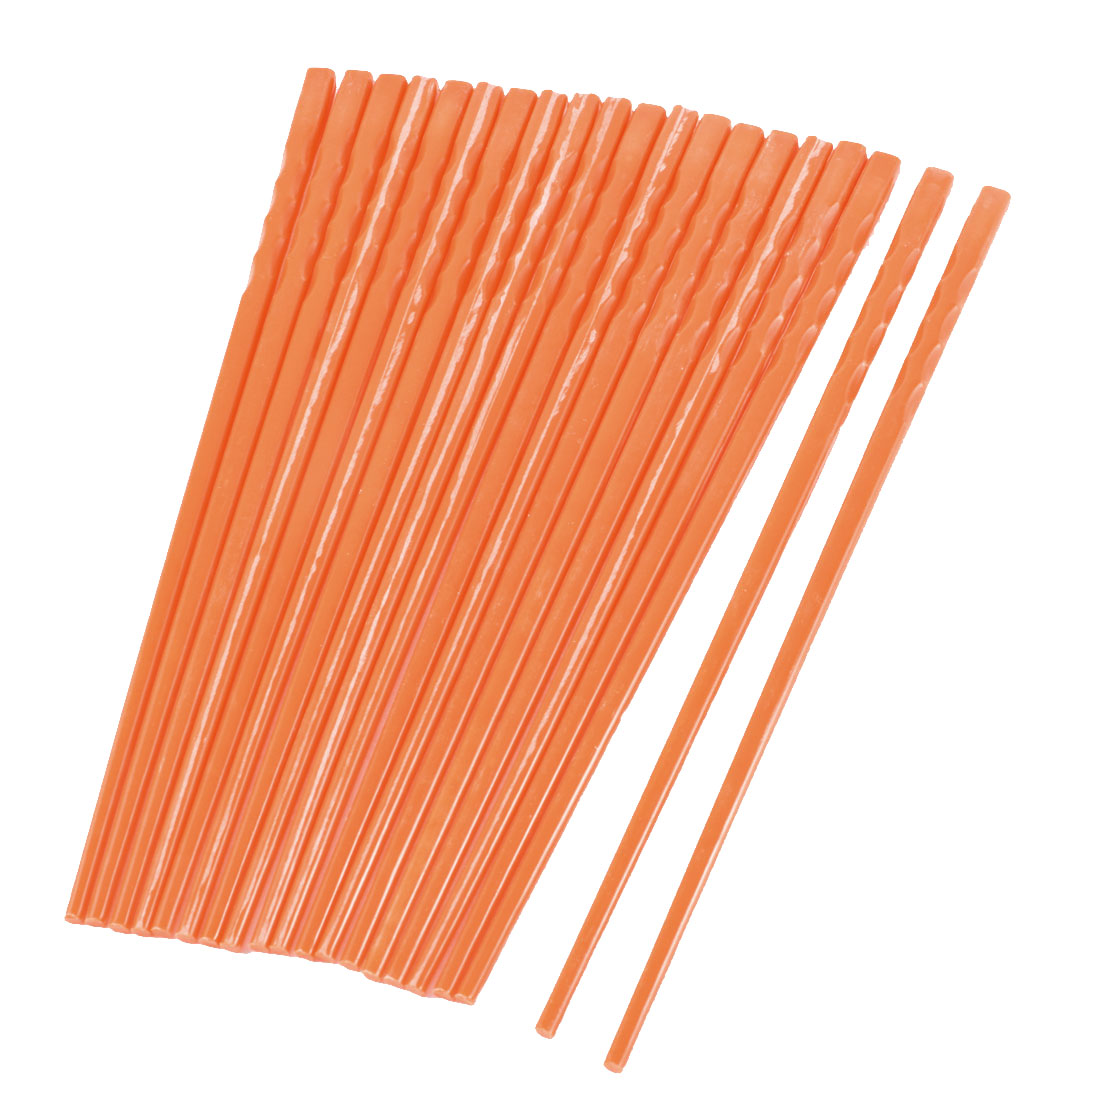 10 Pairs Home Tableware Orange Non-slip Plastic Chopsticks